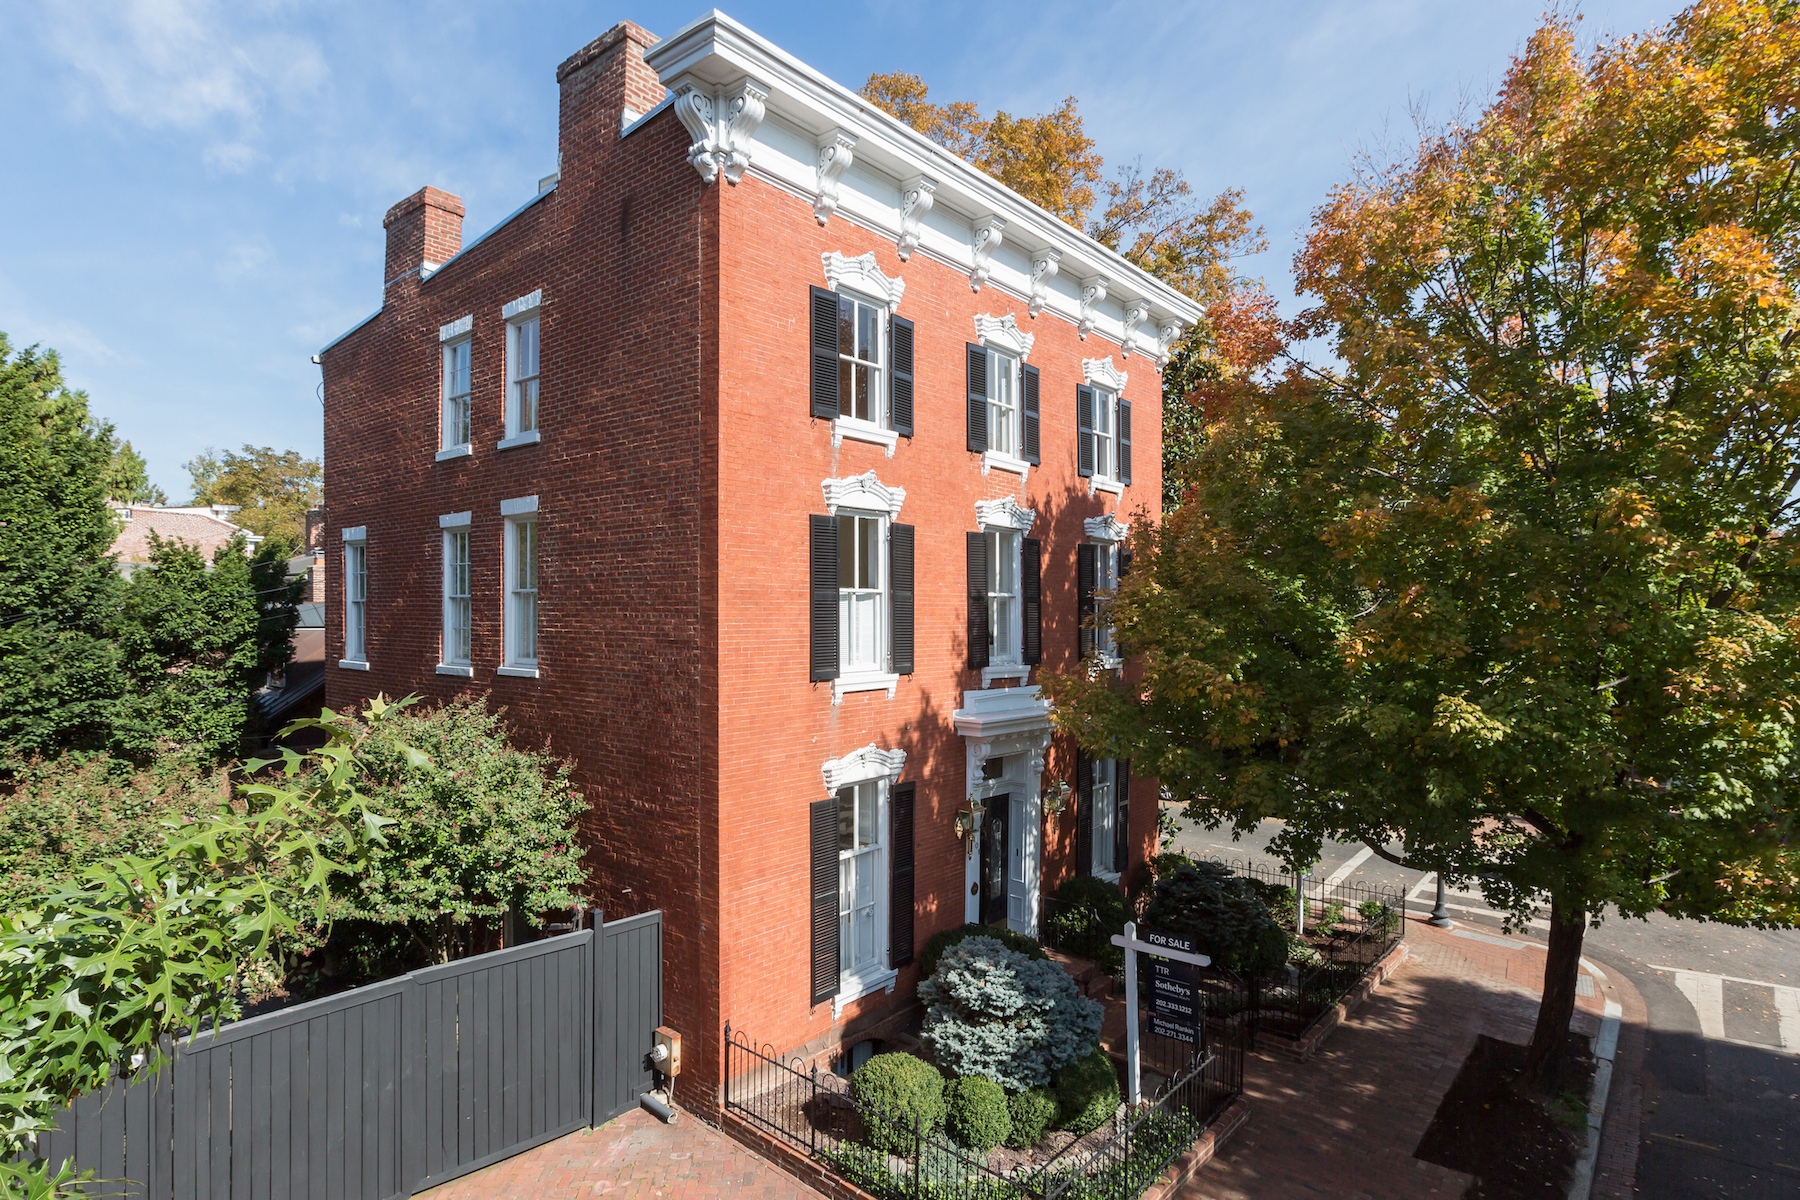 Single Family Home for Sale at Georgetown 3401 N Street Nw Georgetown, Washington, District Of Columbia, 20007 United States